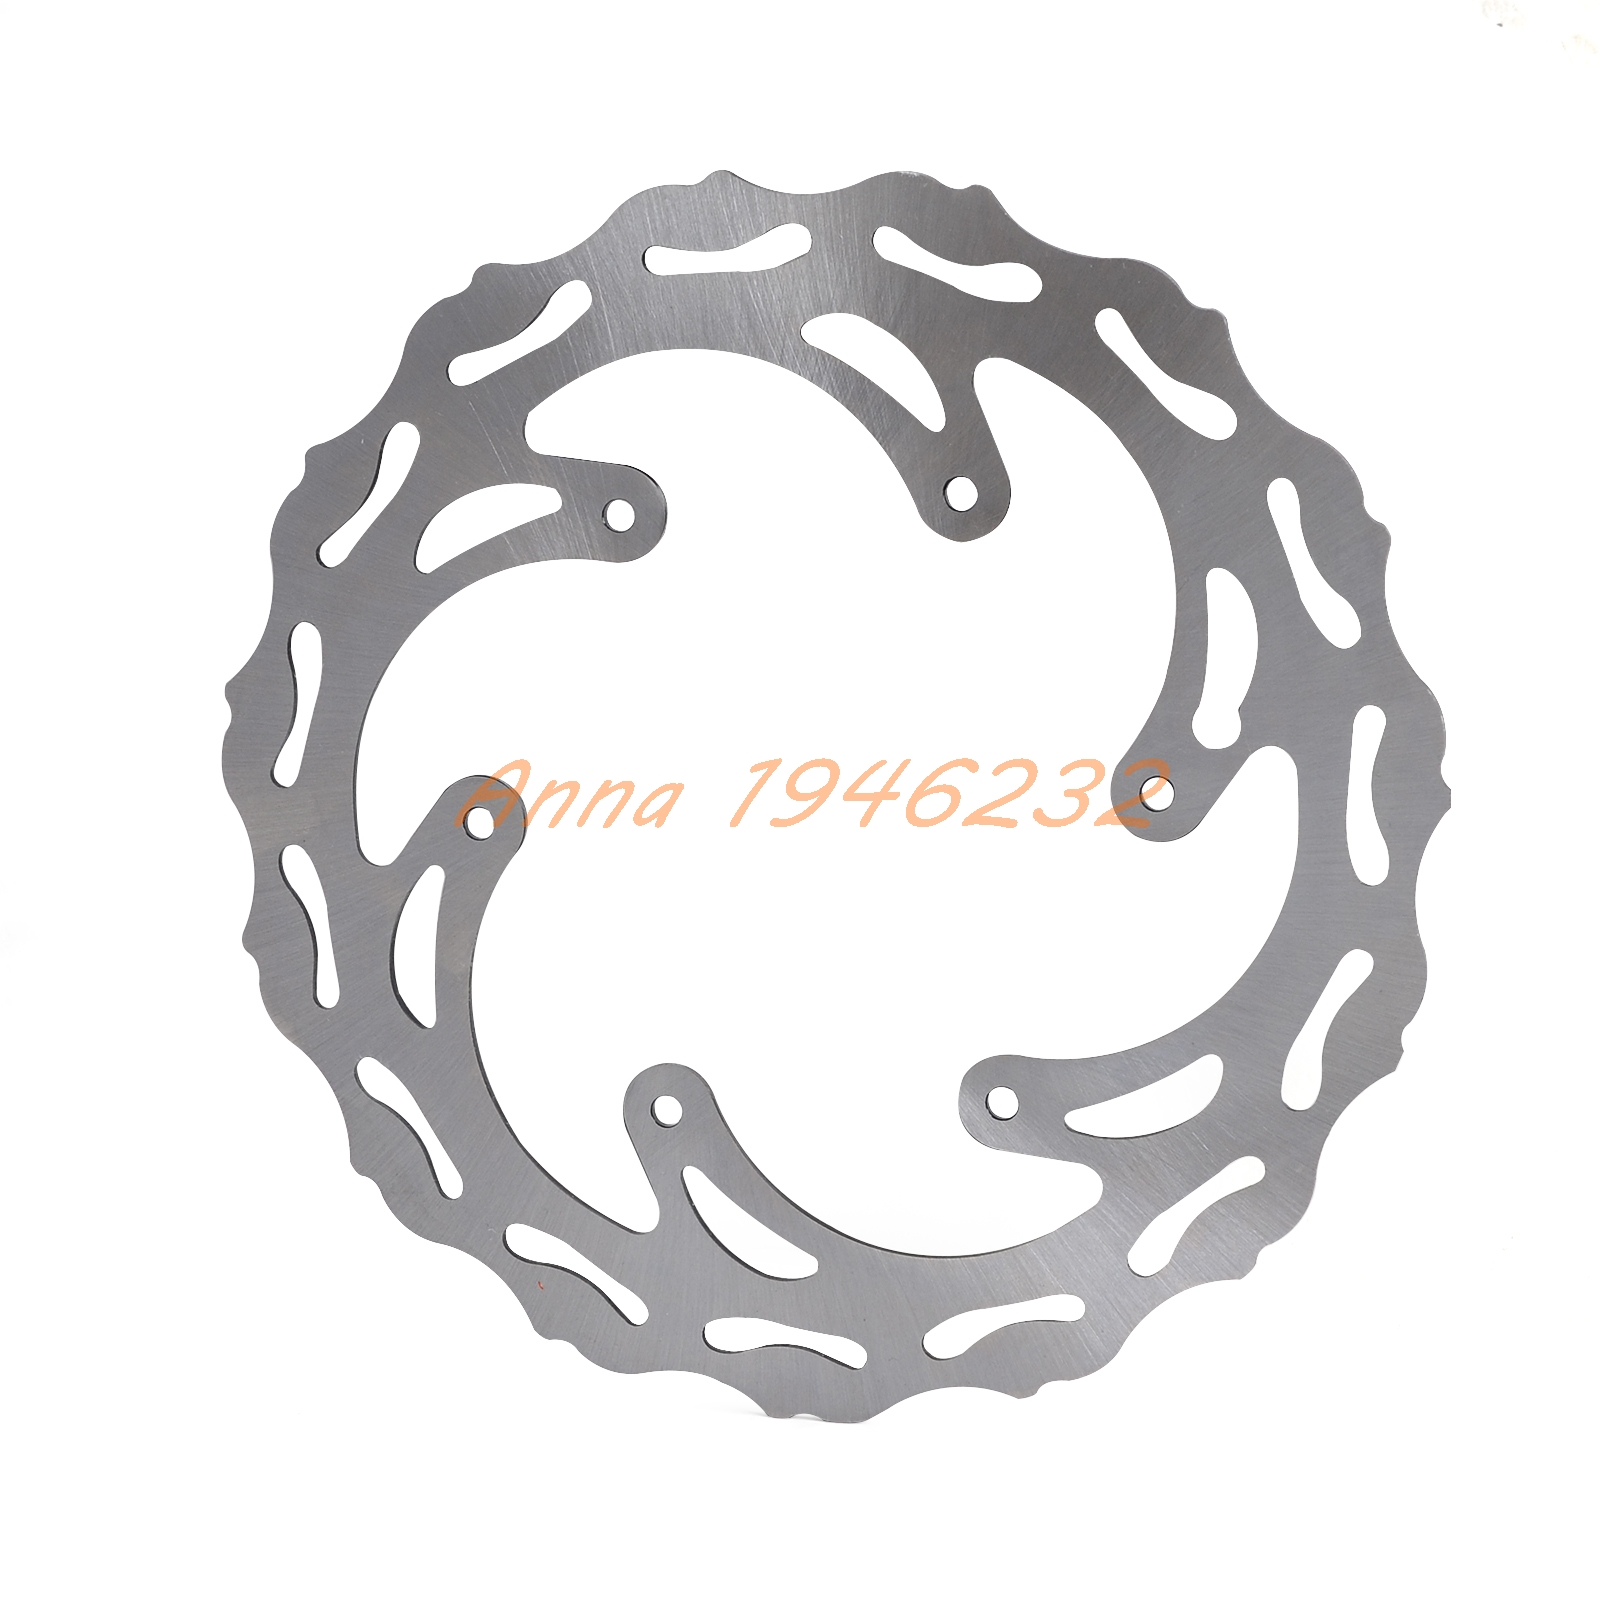 Front Wavy Brake Disc Rotor Fits For KTM 125 200 250 300 400 500 525 530 EXC EXCF SX SXF XC EXCR SIX DAYS  Motorcycle front brake disc rotor for ktm 380 exc 1998 1999 2000 2001 2002 sx mxc 1998 2001 400 egs exc g xc w 2007 2008 2009 07 08 09